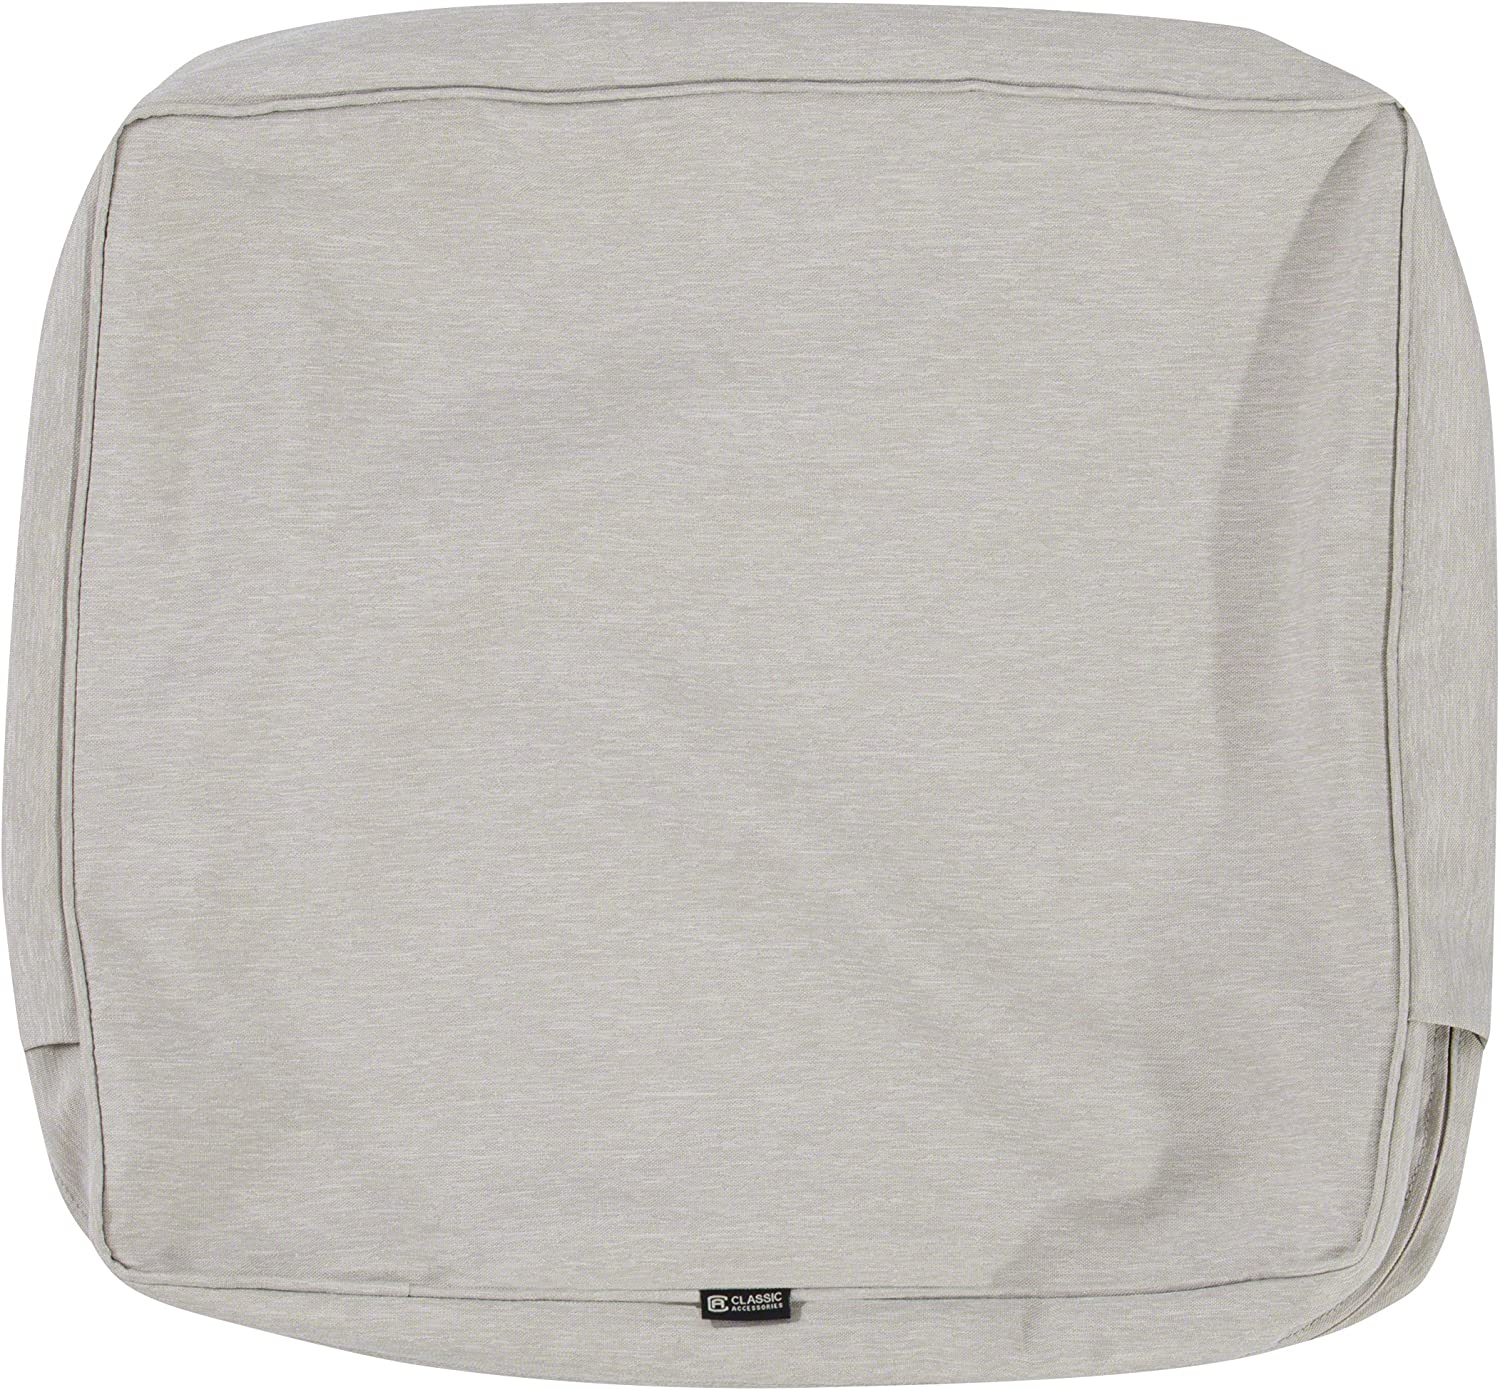 Classic Accessories Montlake Water-Resistant 21 x 22 x 4 Inch Patio Back Cushion Slip Cover, Heather Grey